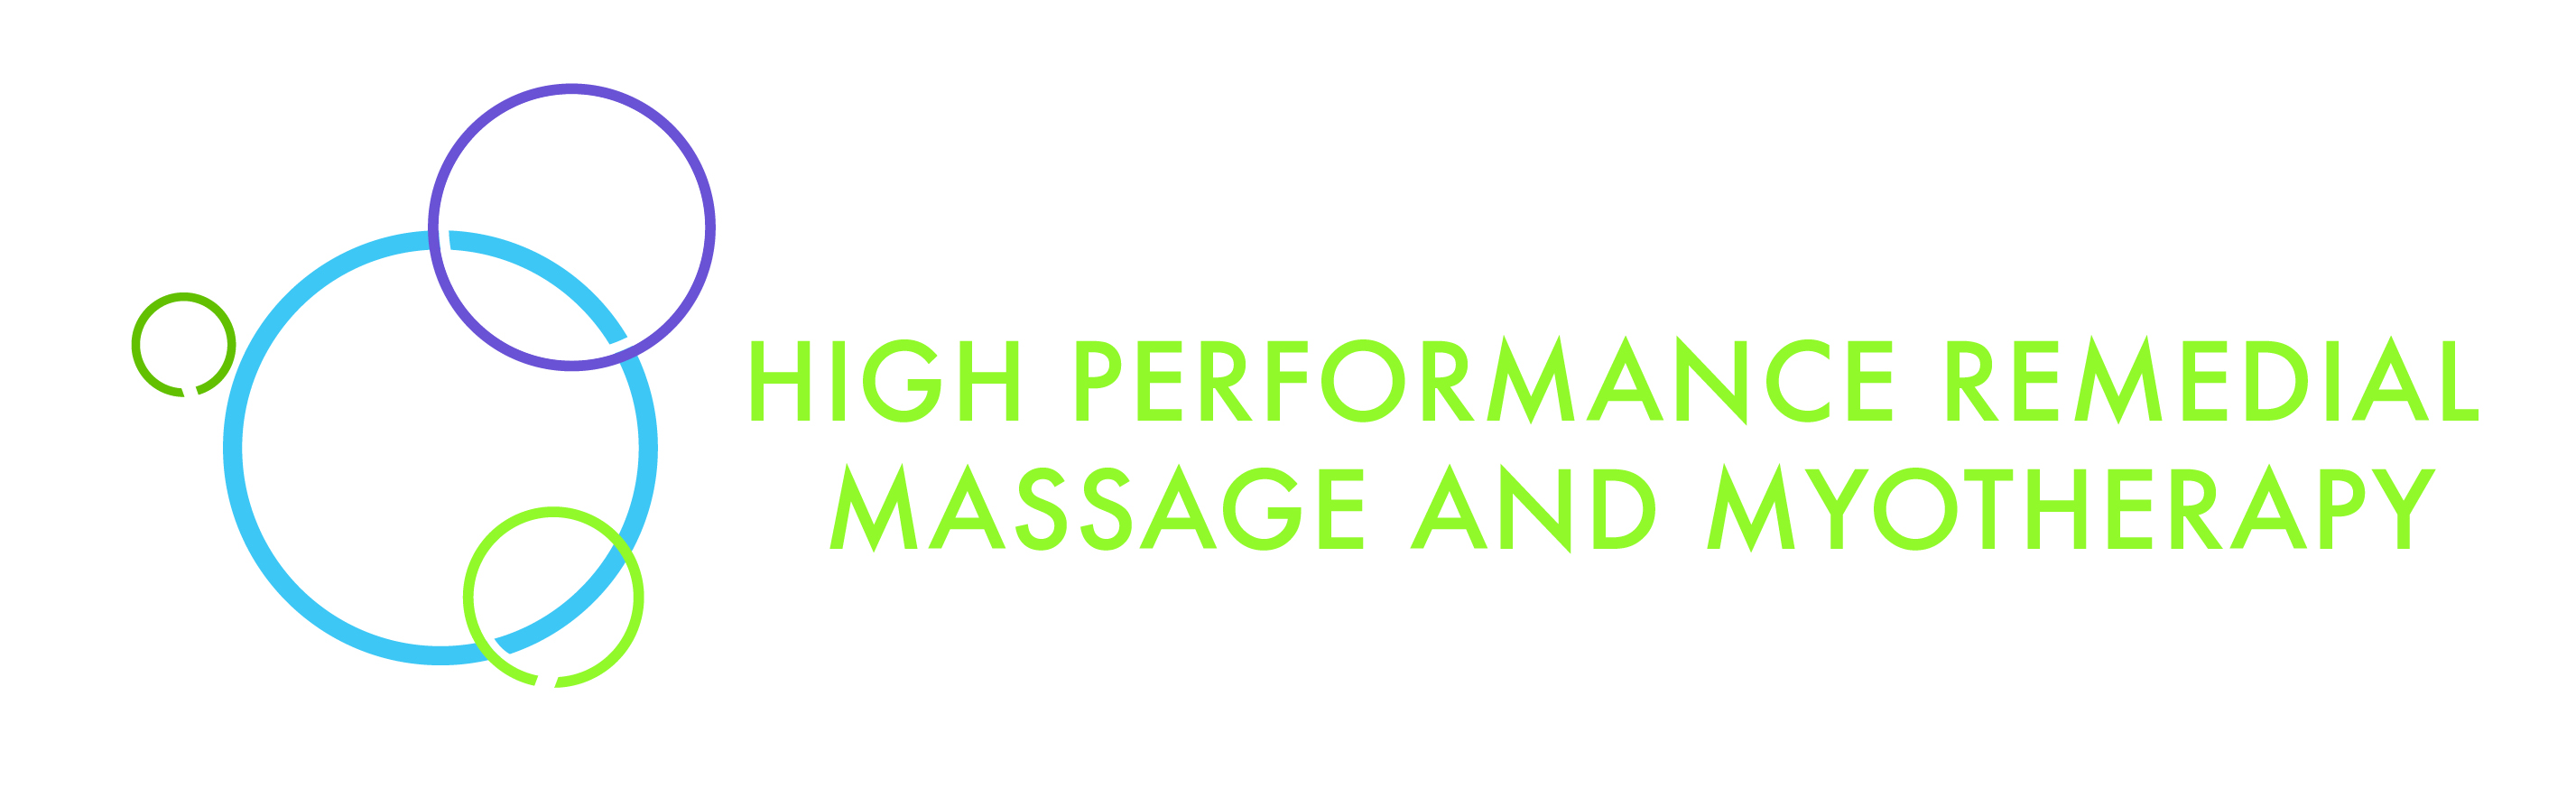 High Performance Remedial Massage and Myotherapy